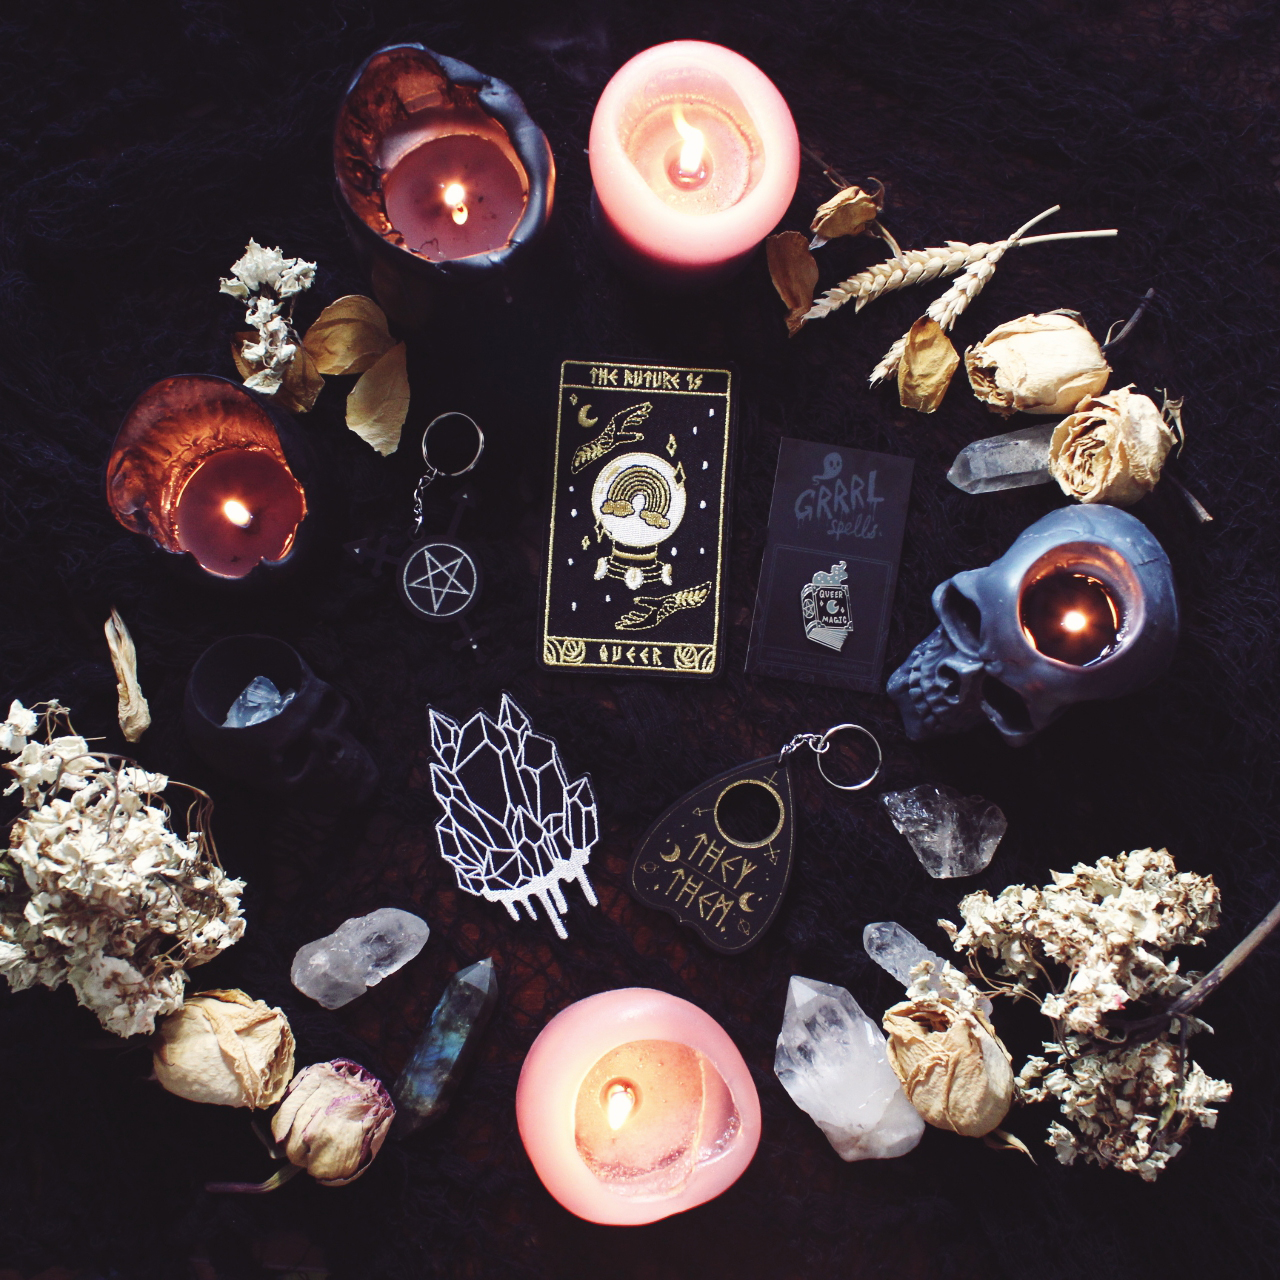 Image of crystals, dried flowers and lit candles surrounding crystal and tarot patches, and occult keychains and pins